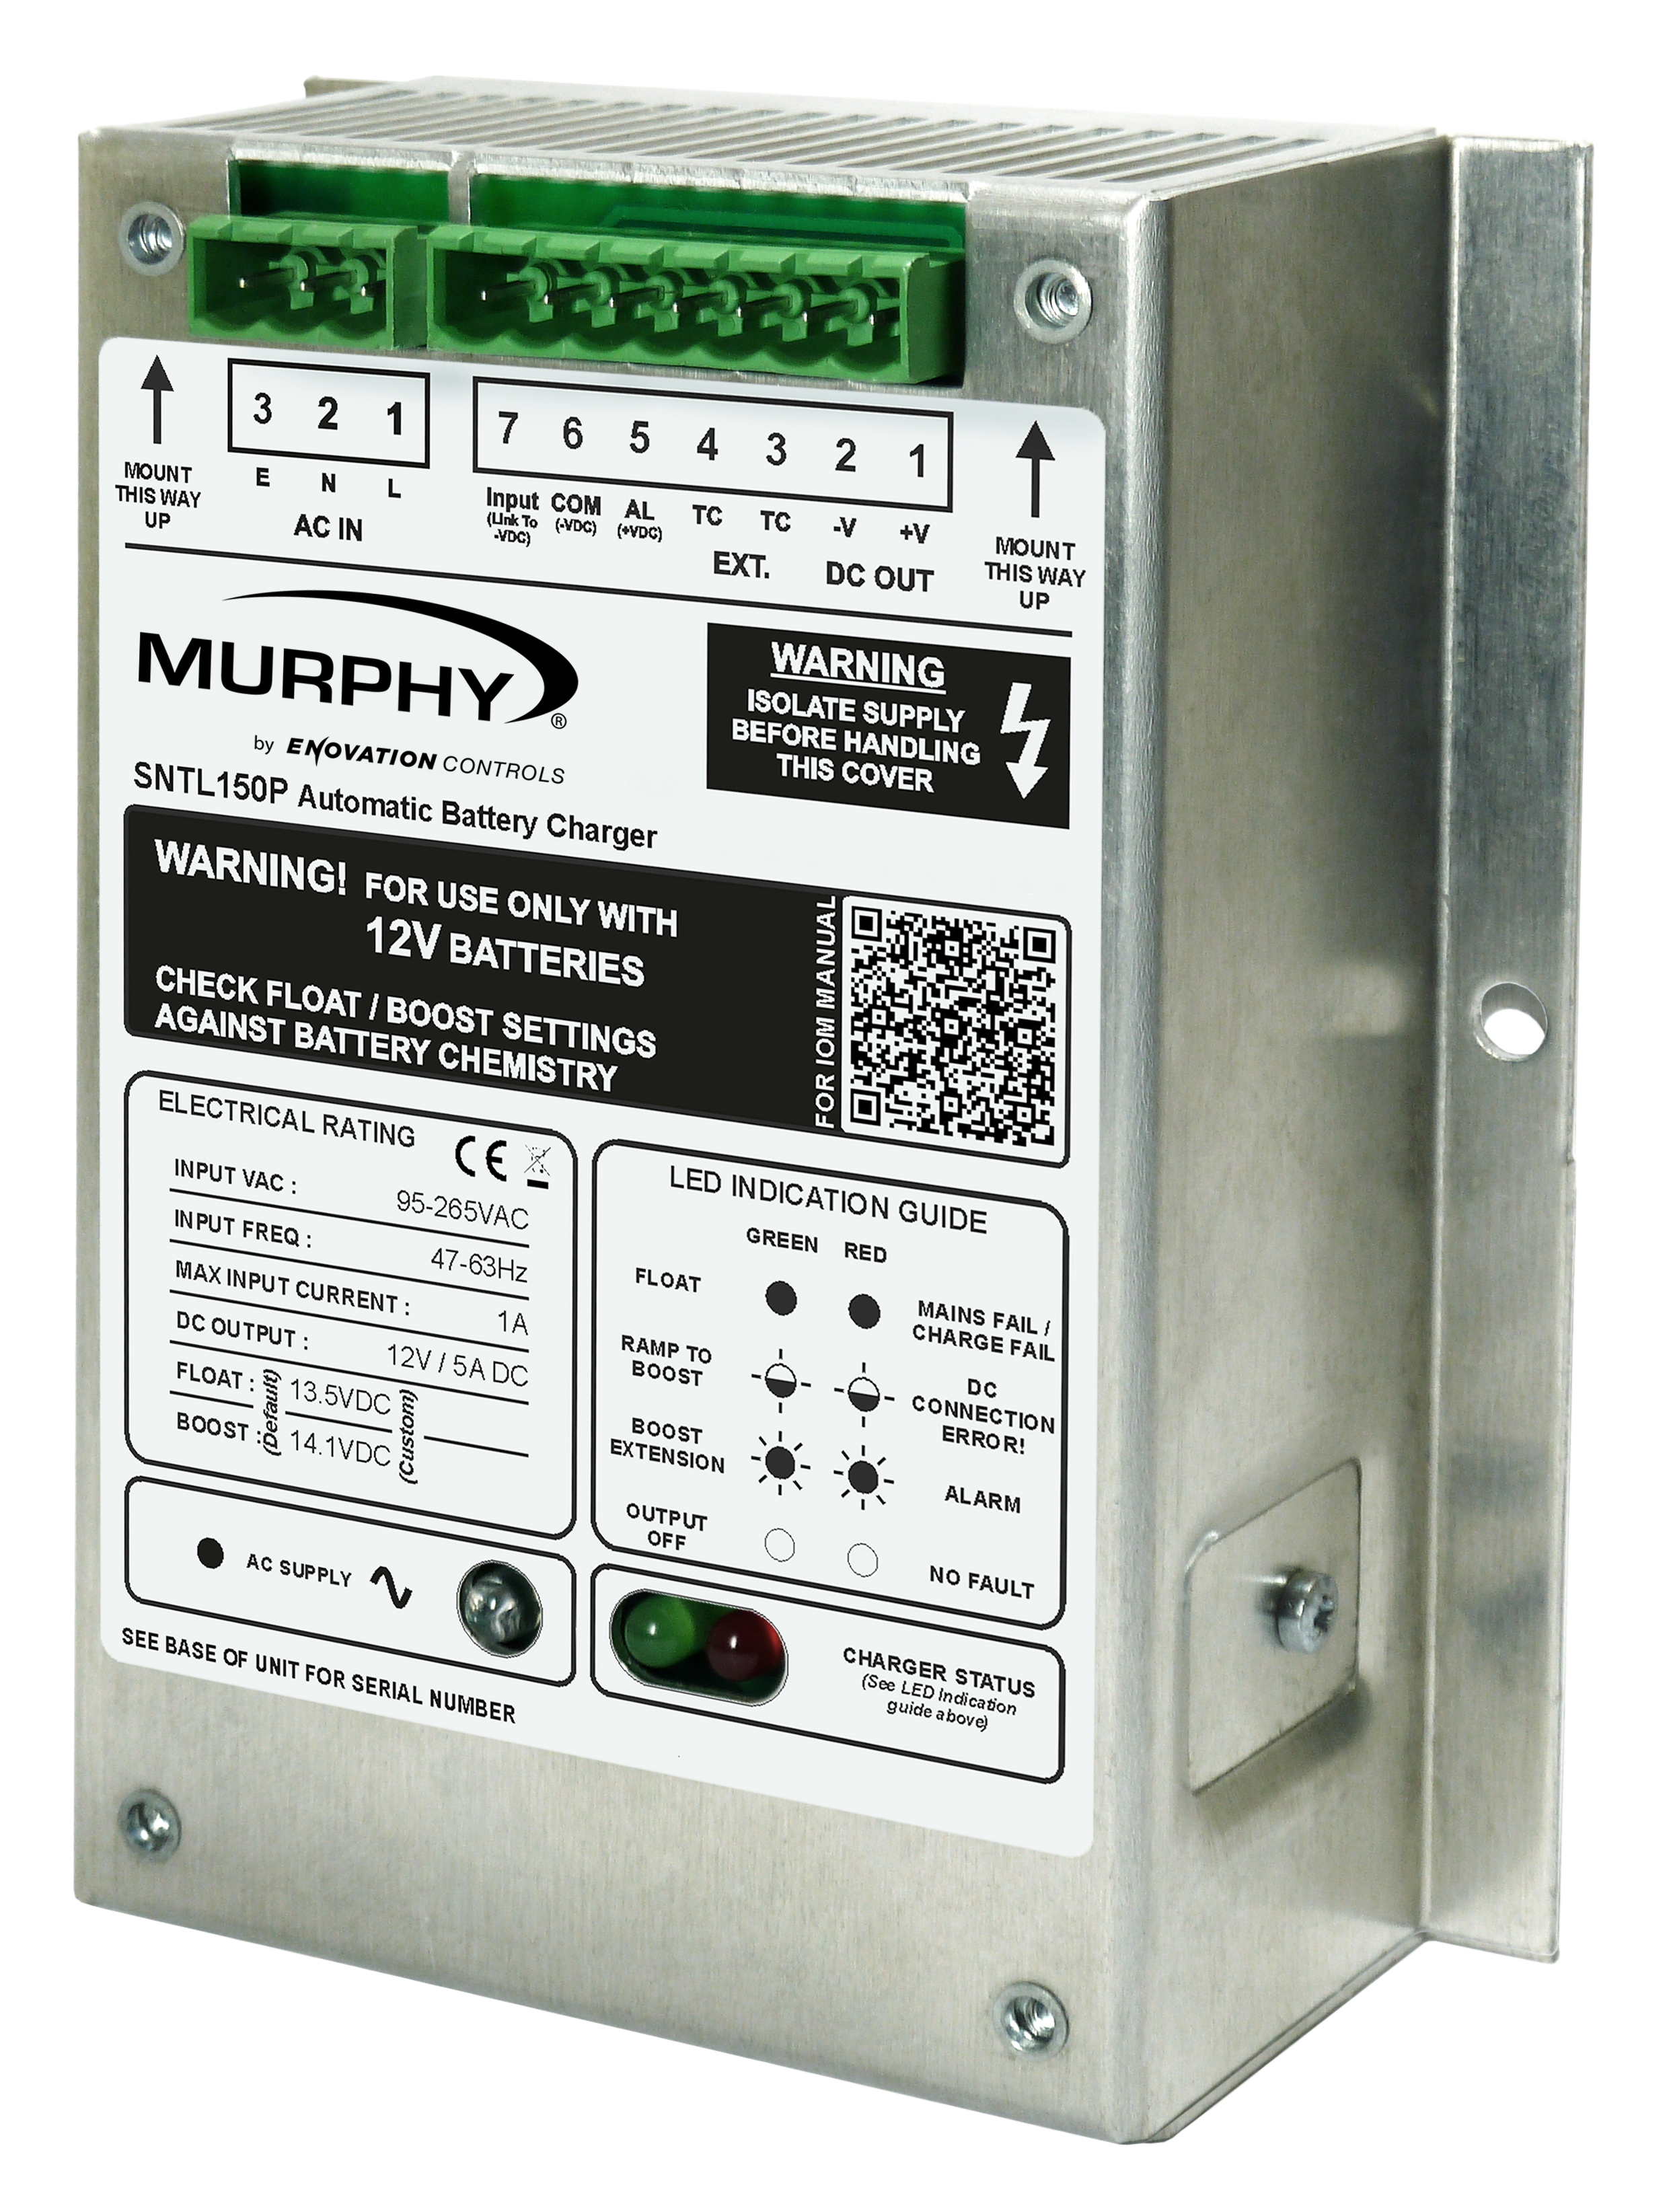 Sentinel 150p Series Murphy By Enovation Controls Automatic Battery Charger